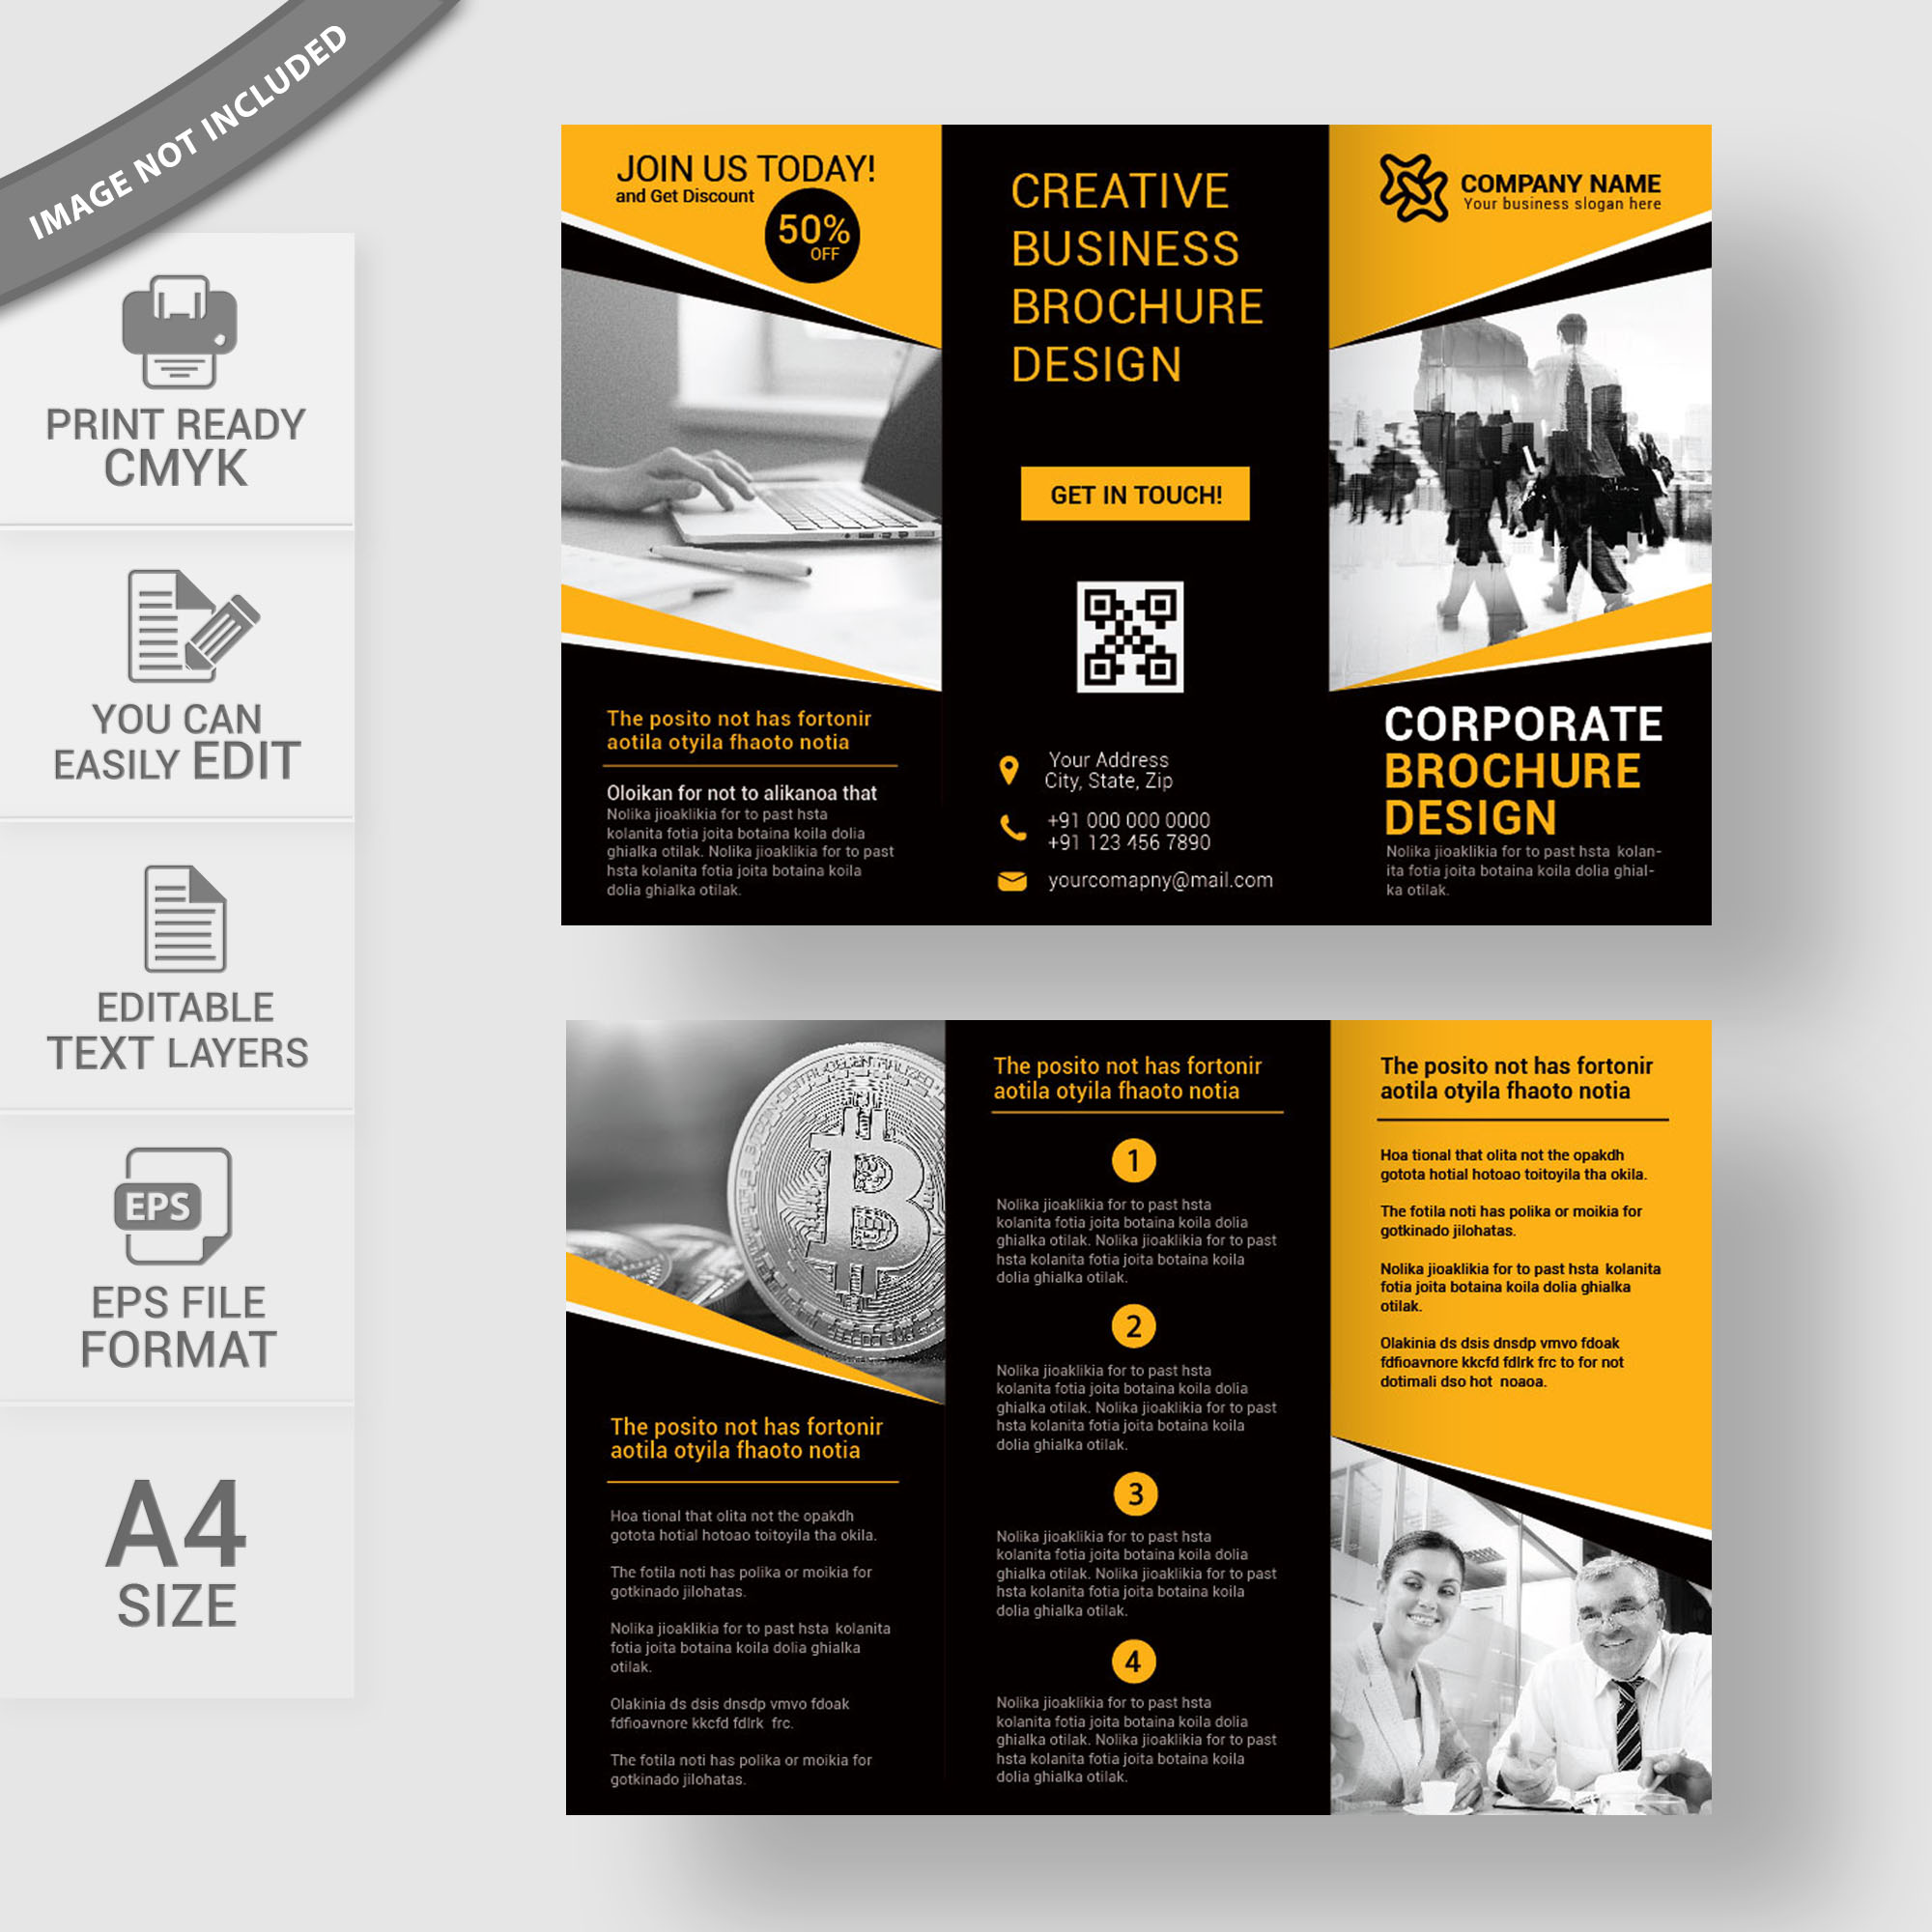 Business Trifold Brochure Template Free Download Wisxicom - Business brochures templates